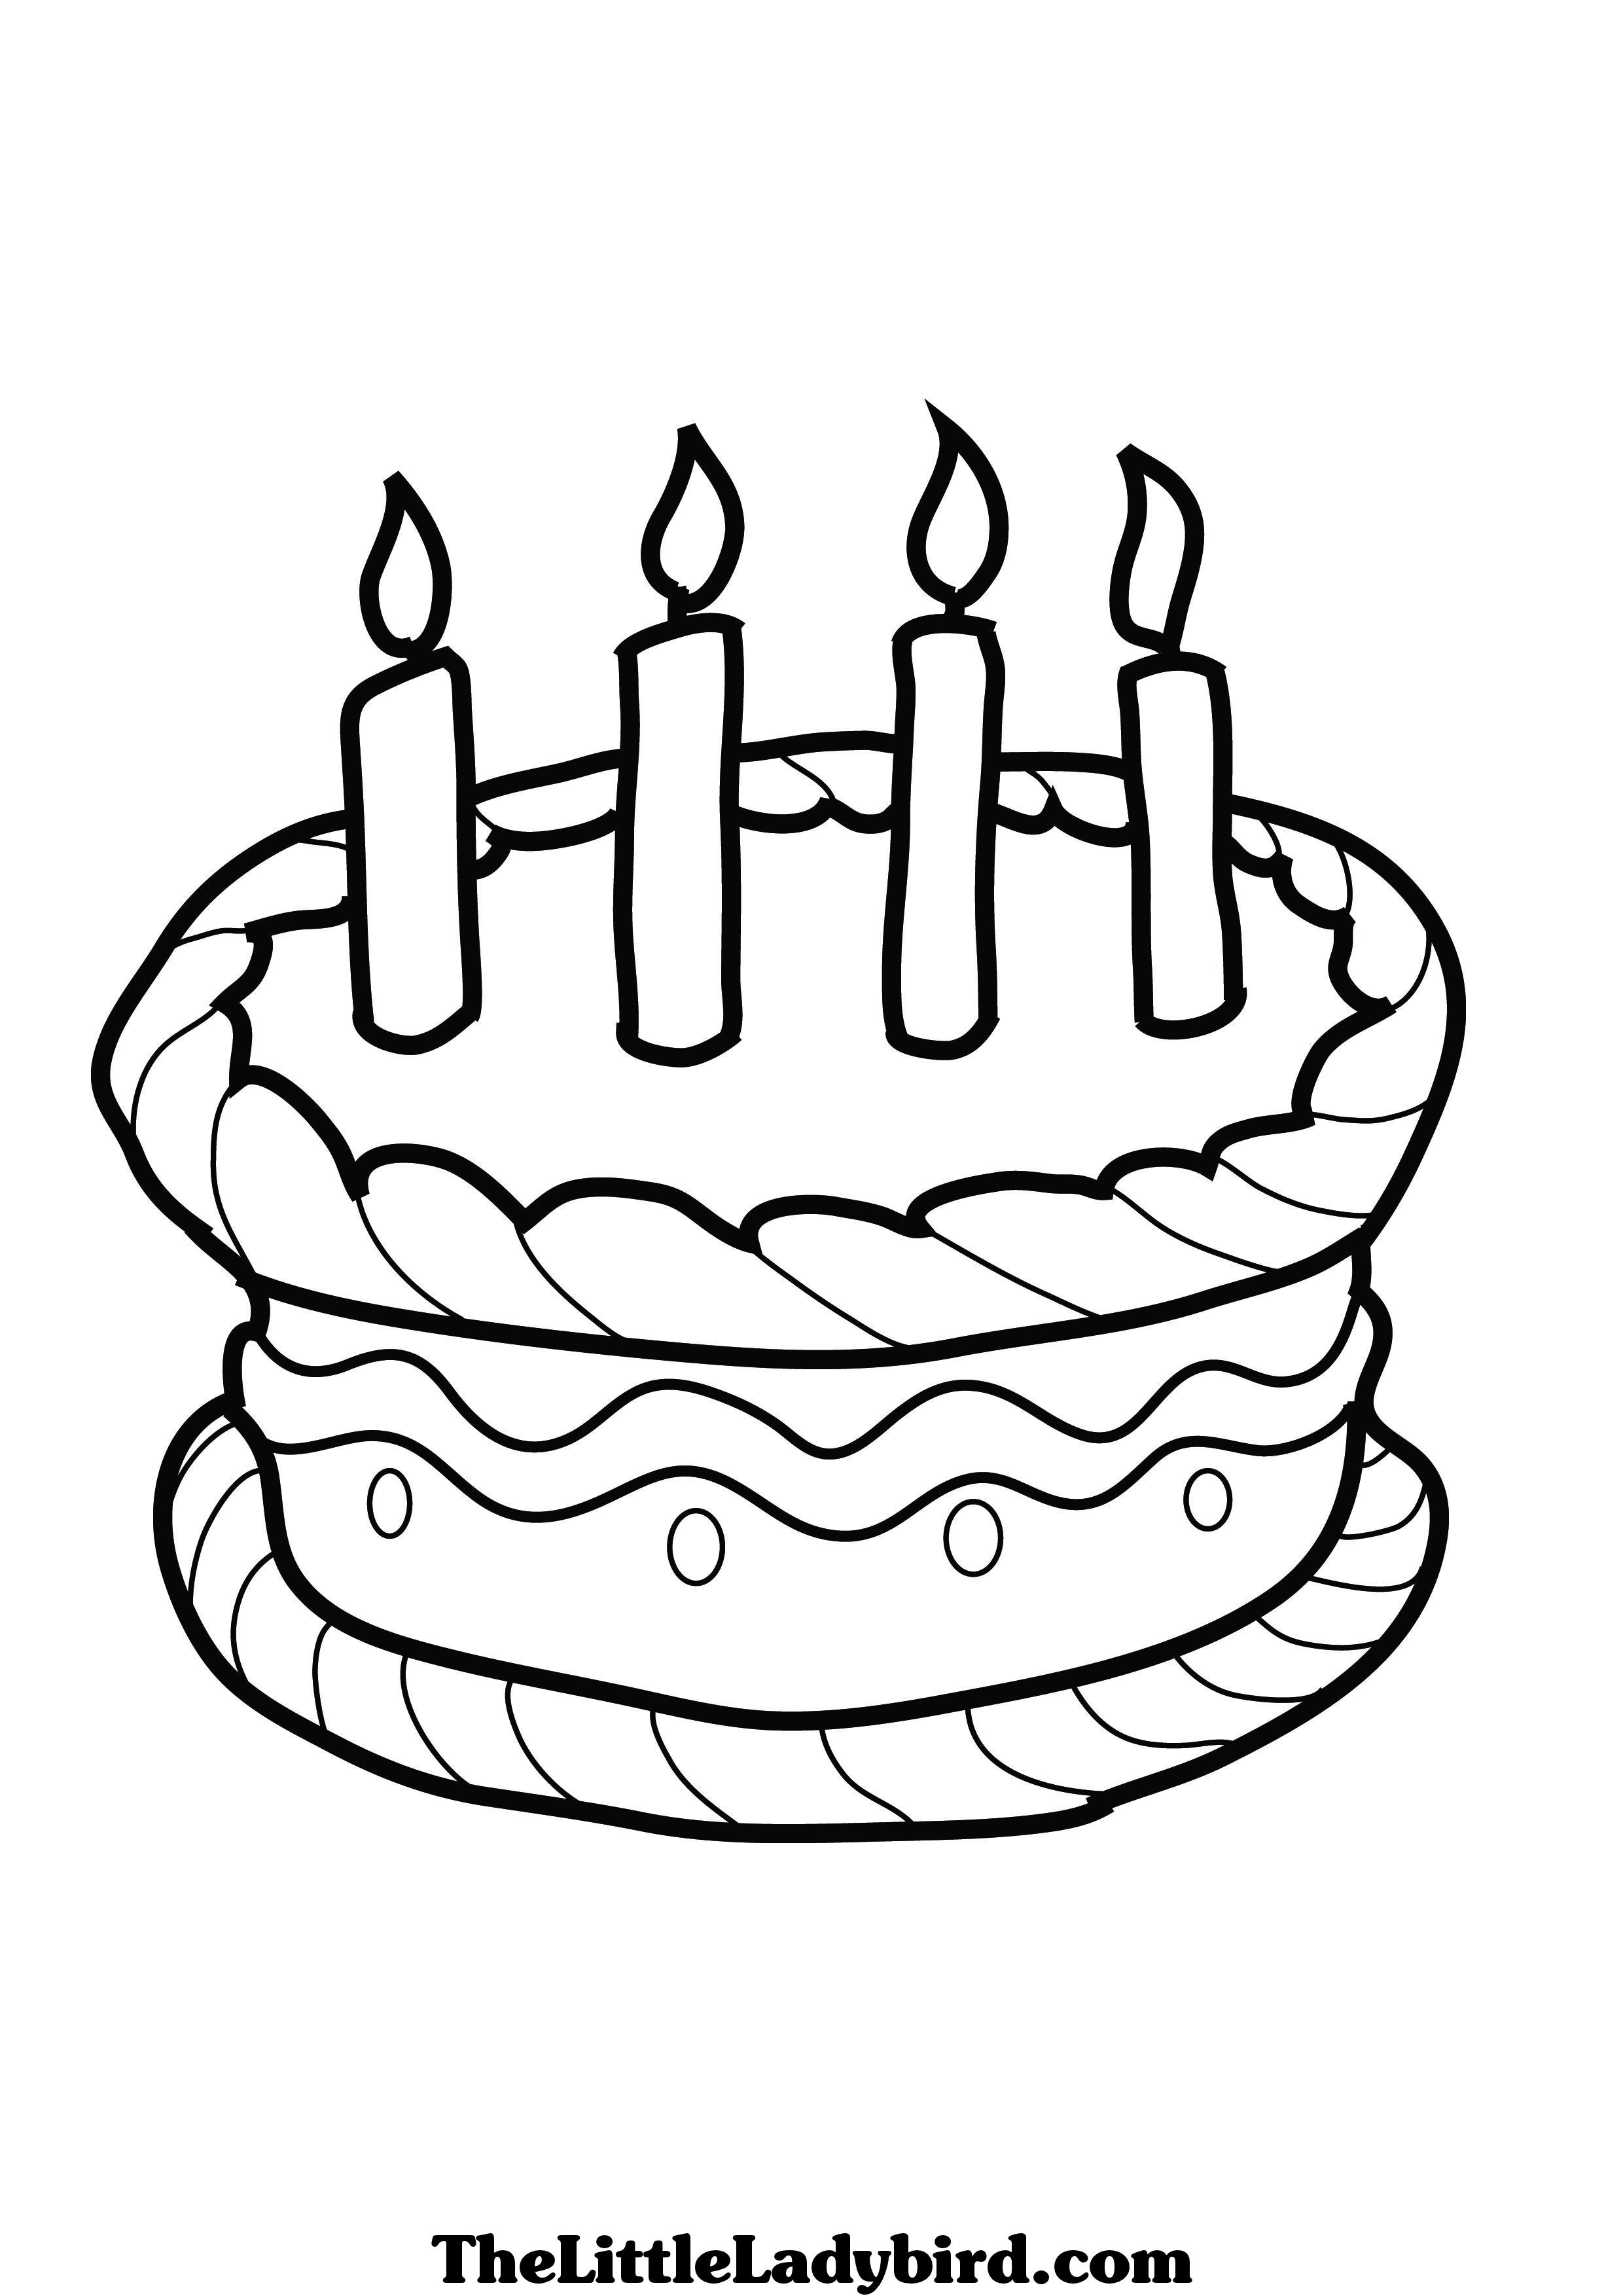 2480x3508 Free Printable Birthday Cake Coloring Pages For Kids To Print